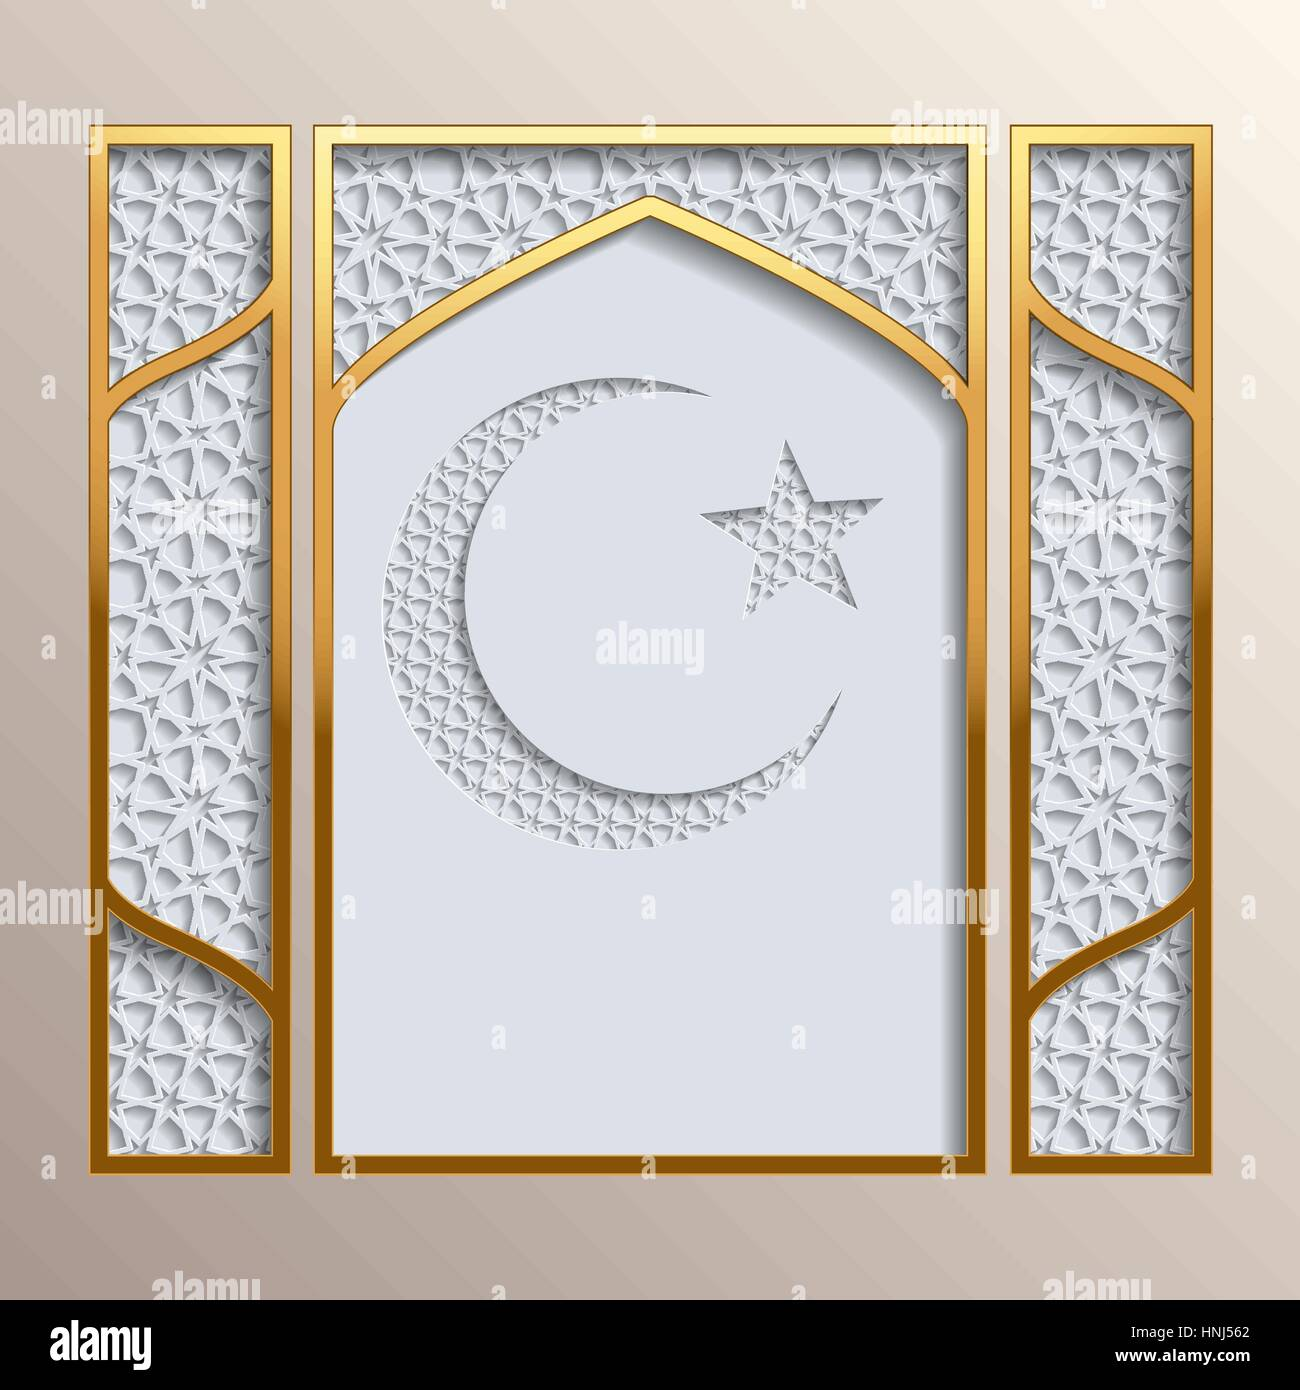 Islamic greeting card. Golden frame with 3D background with ...